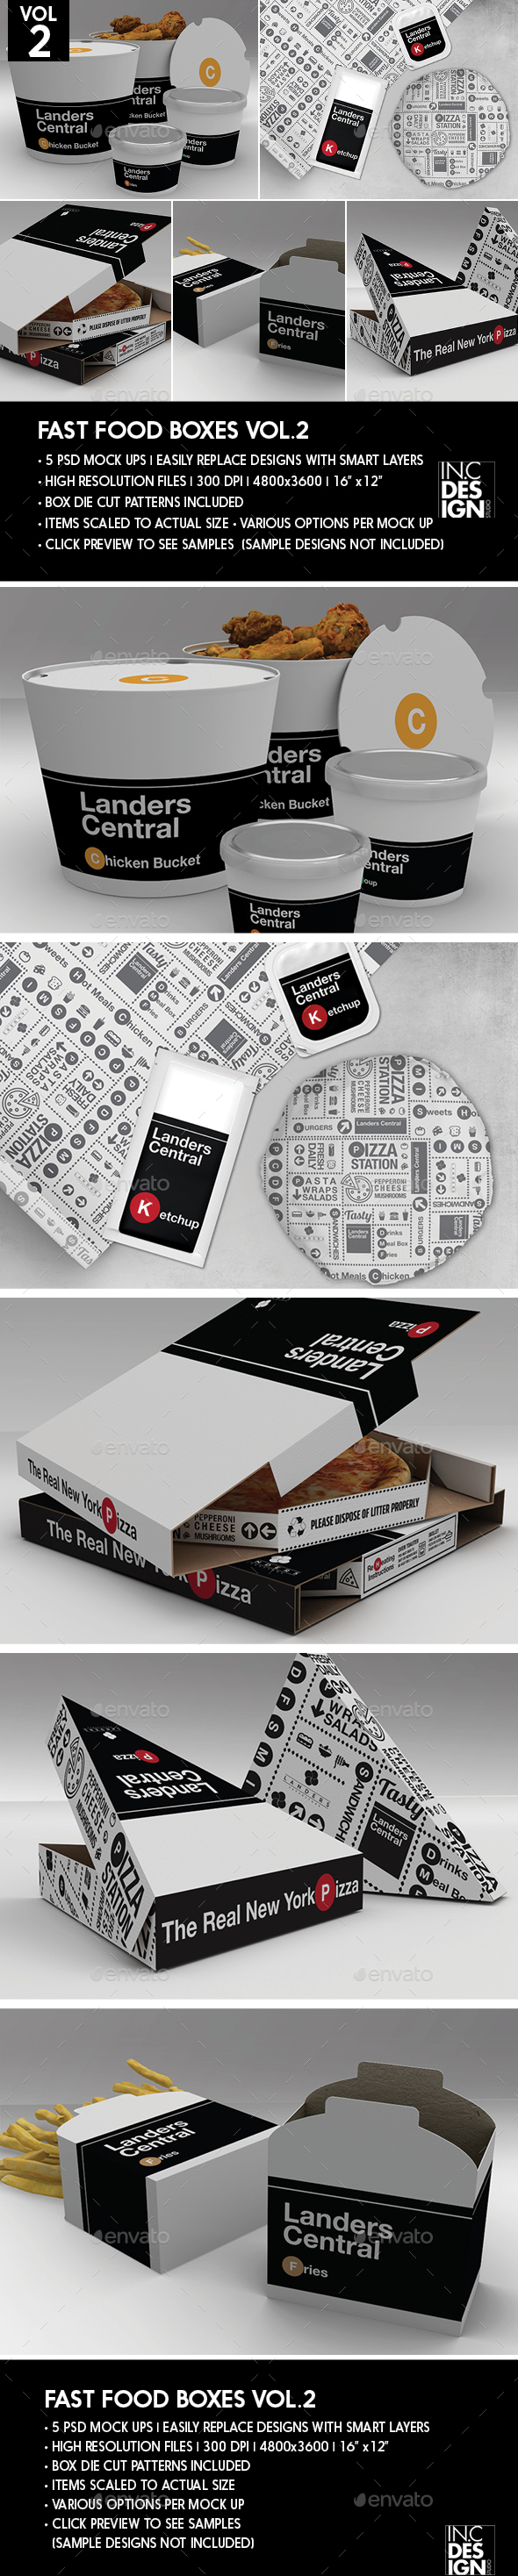 Fast Food Boxes Vol.2:Take Out Packaging Mock Ups